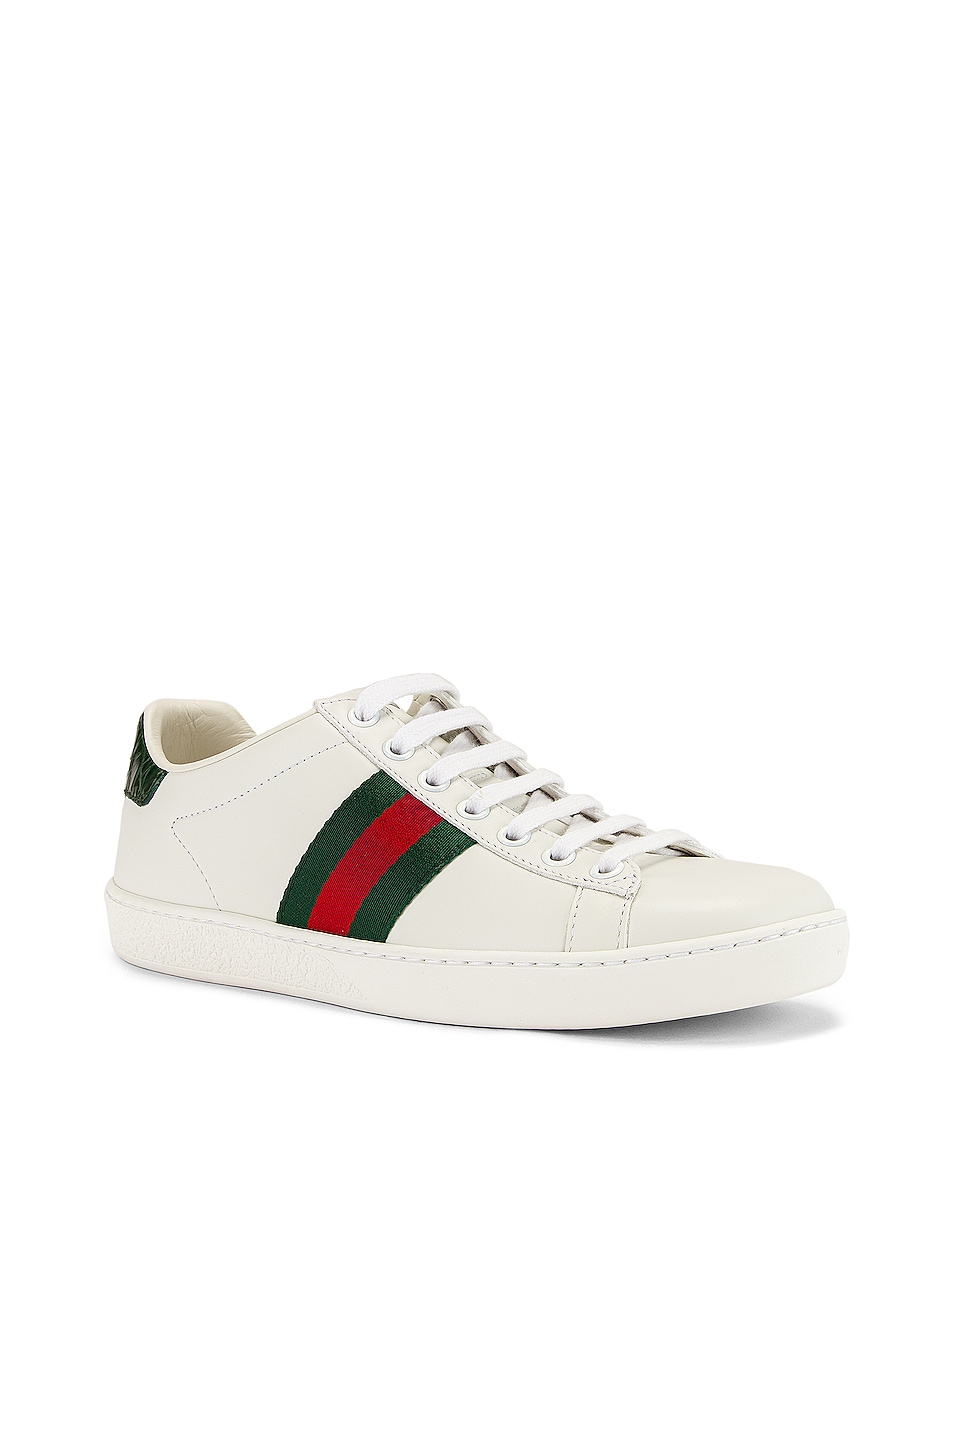 Image 2 of Gucci New Ace Basic Sneakers in White & Green